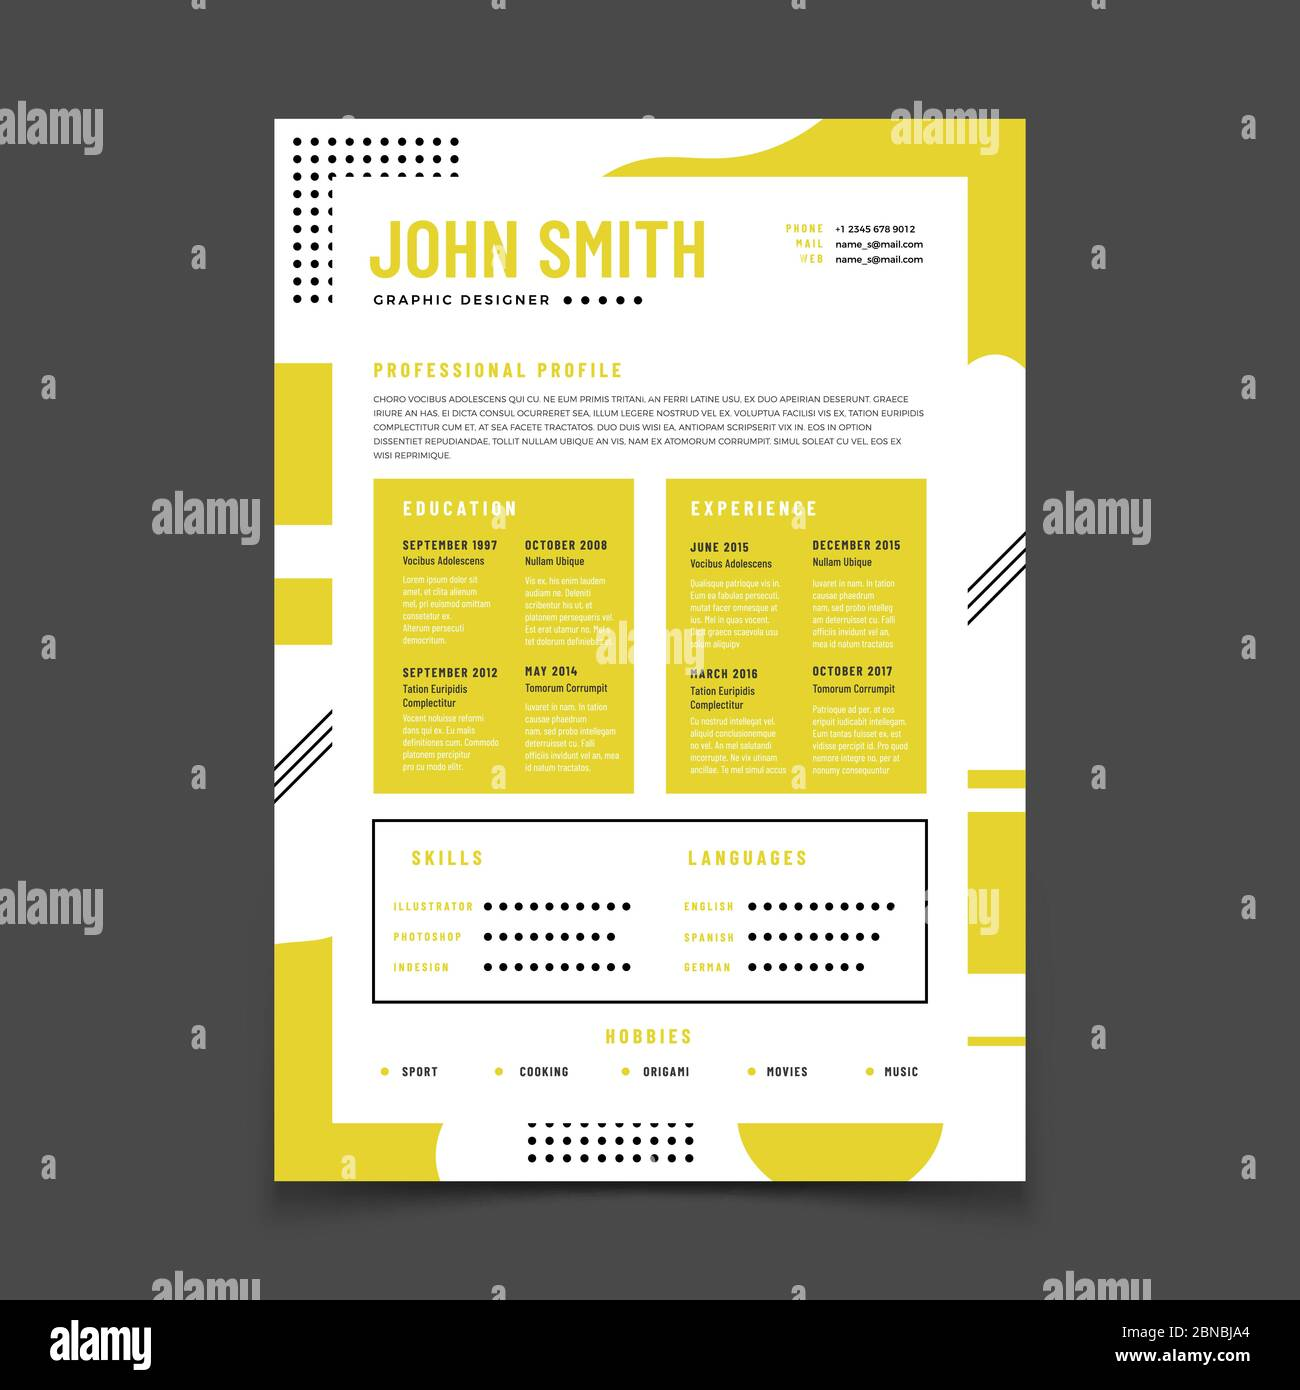 Cv Design Professional Resume With Business Details Curriculum